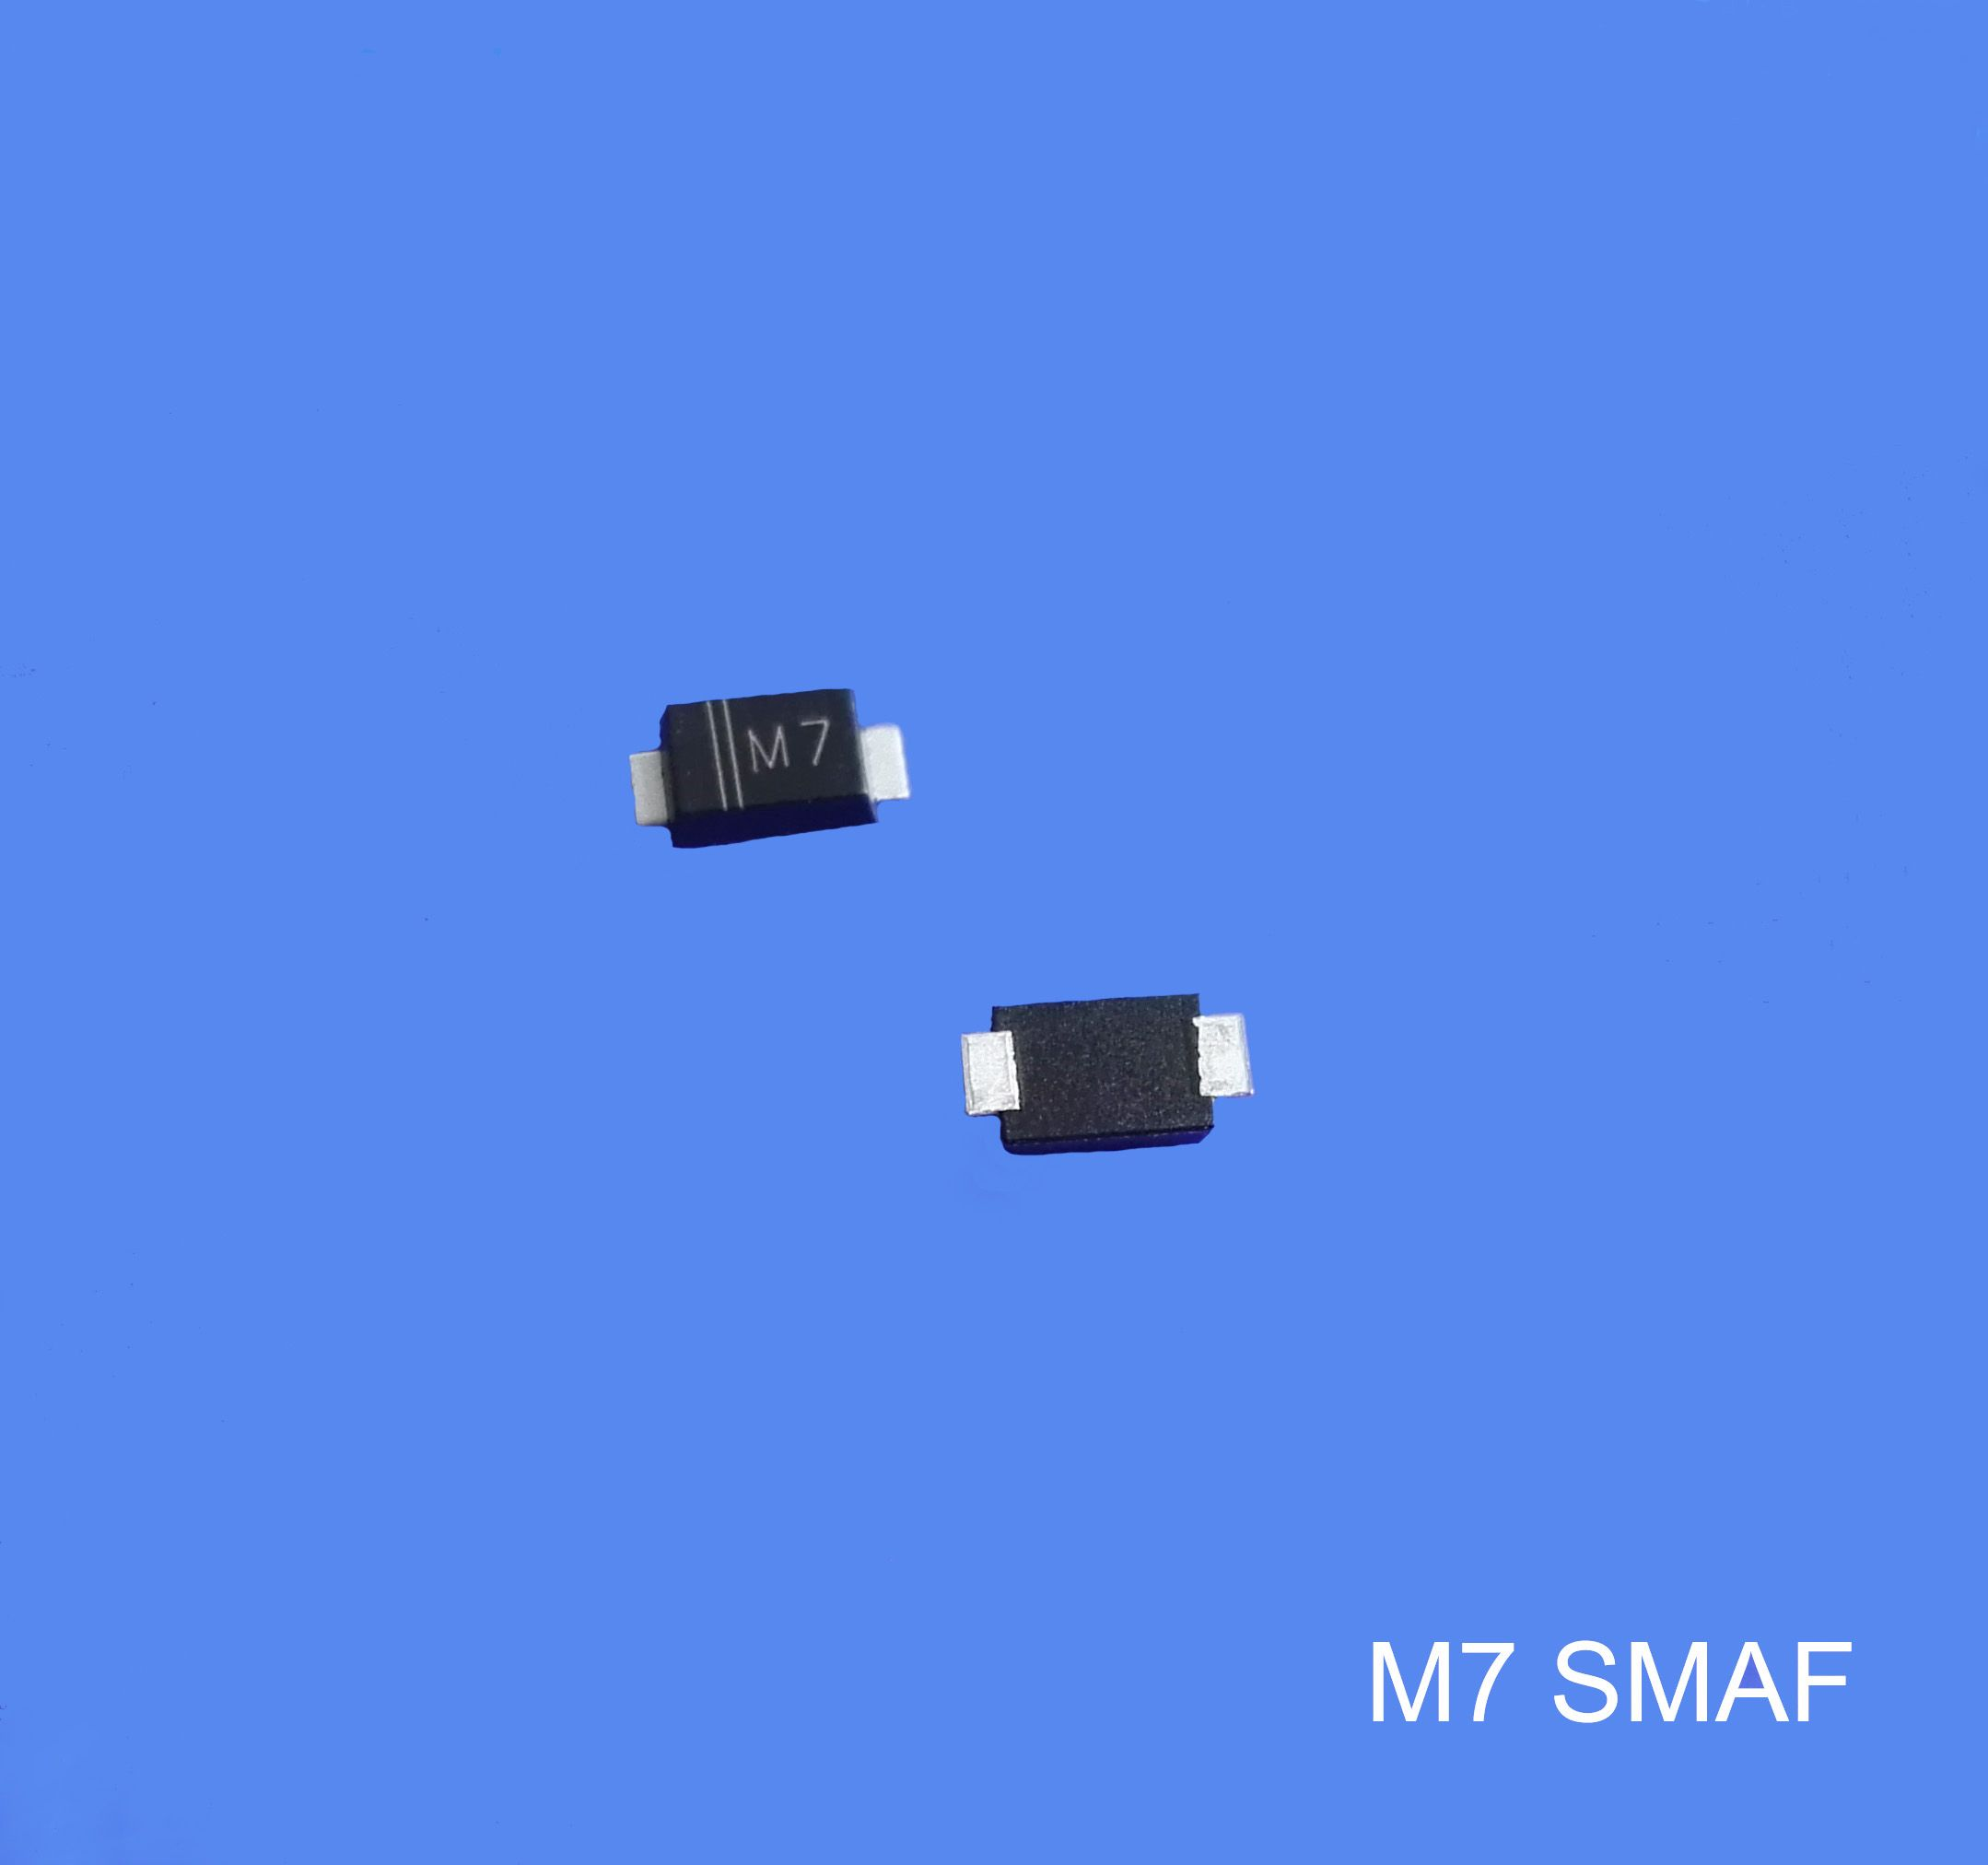 M7f Electronic Components Surface Mount Glass Passivated Rectifier Schottky Diodes Pin Smd Switching Diode M7 1a 1000v Flat Foot Smaf